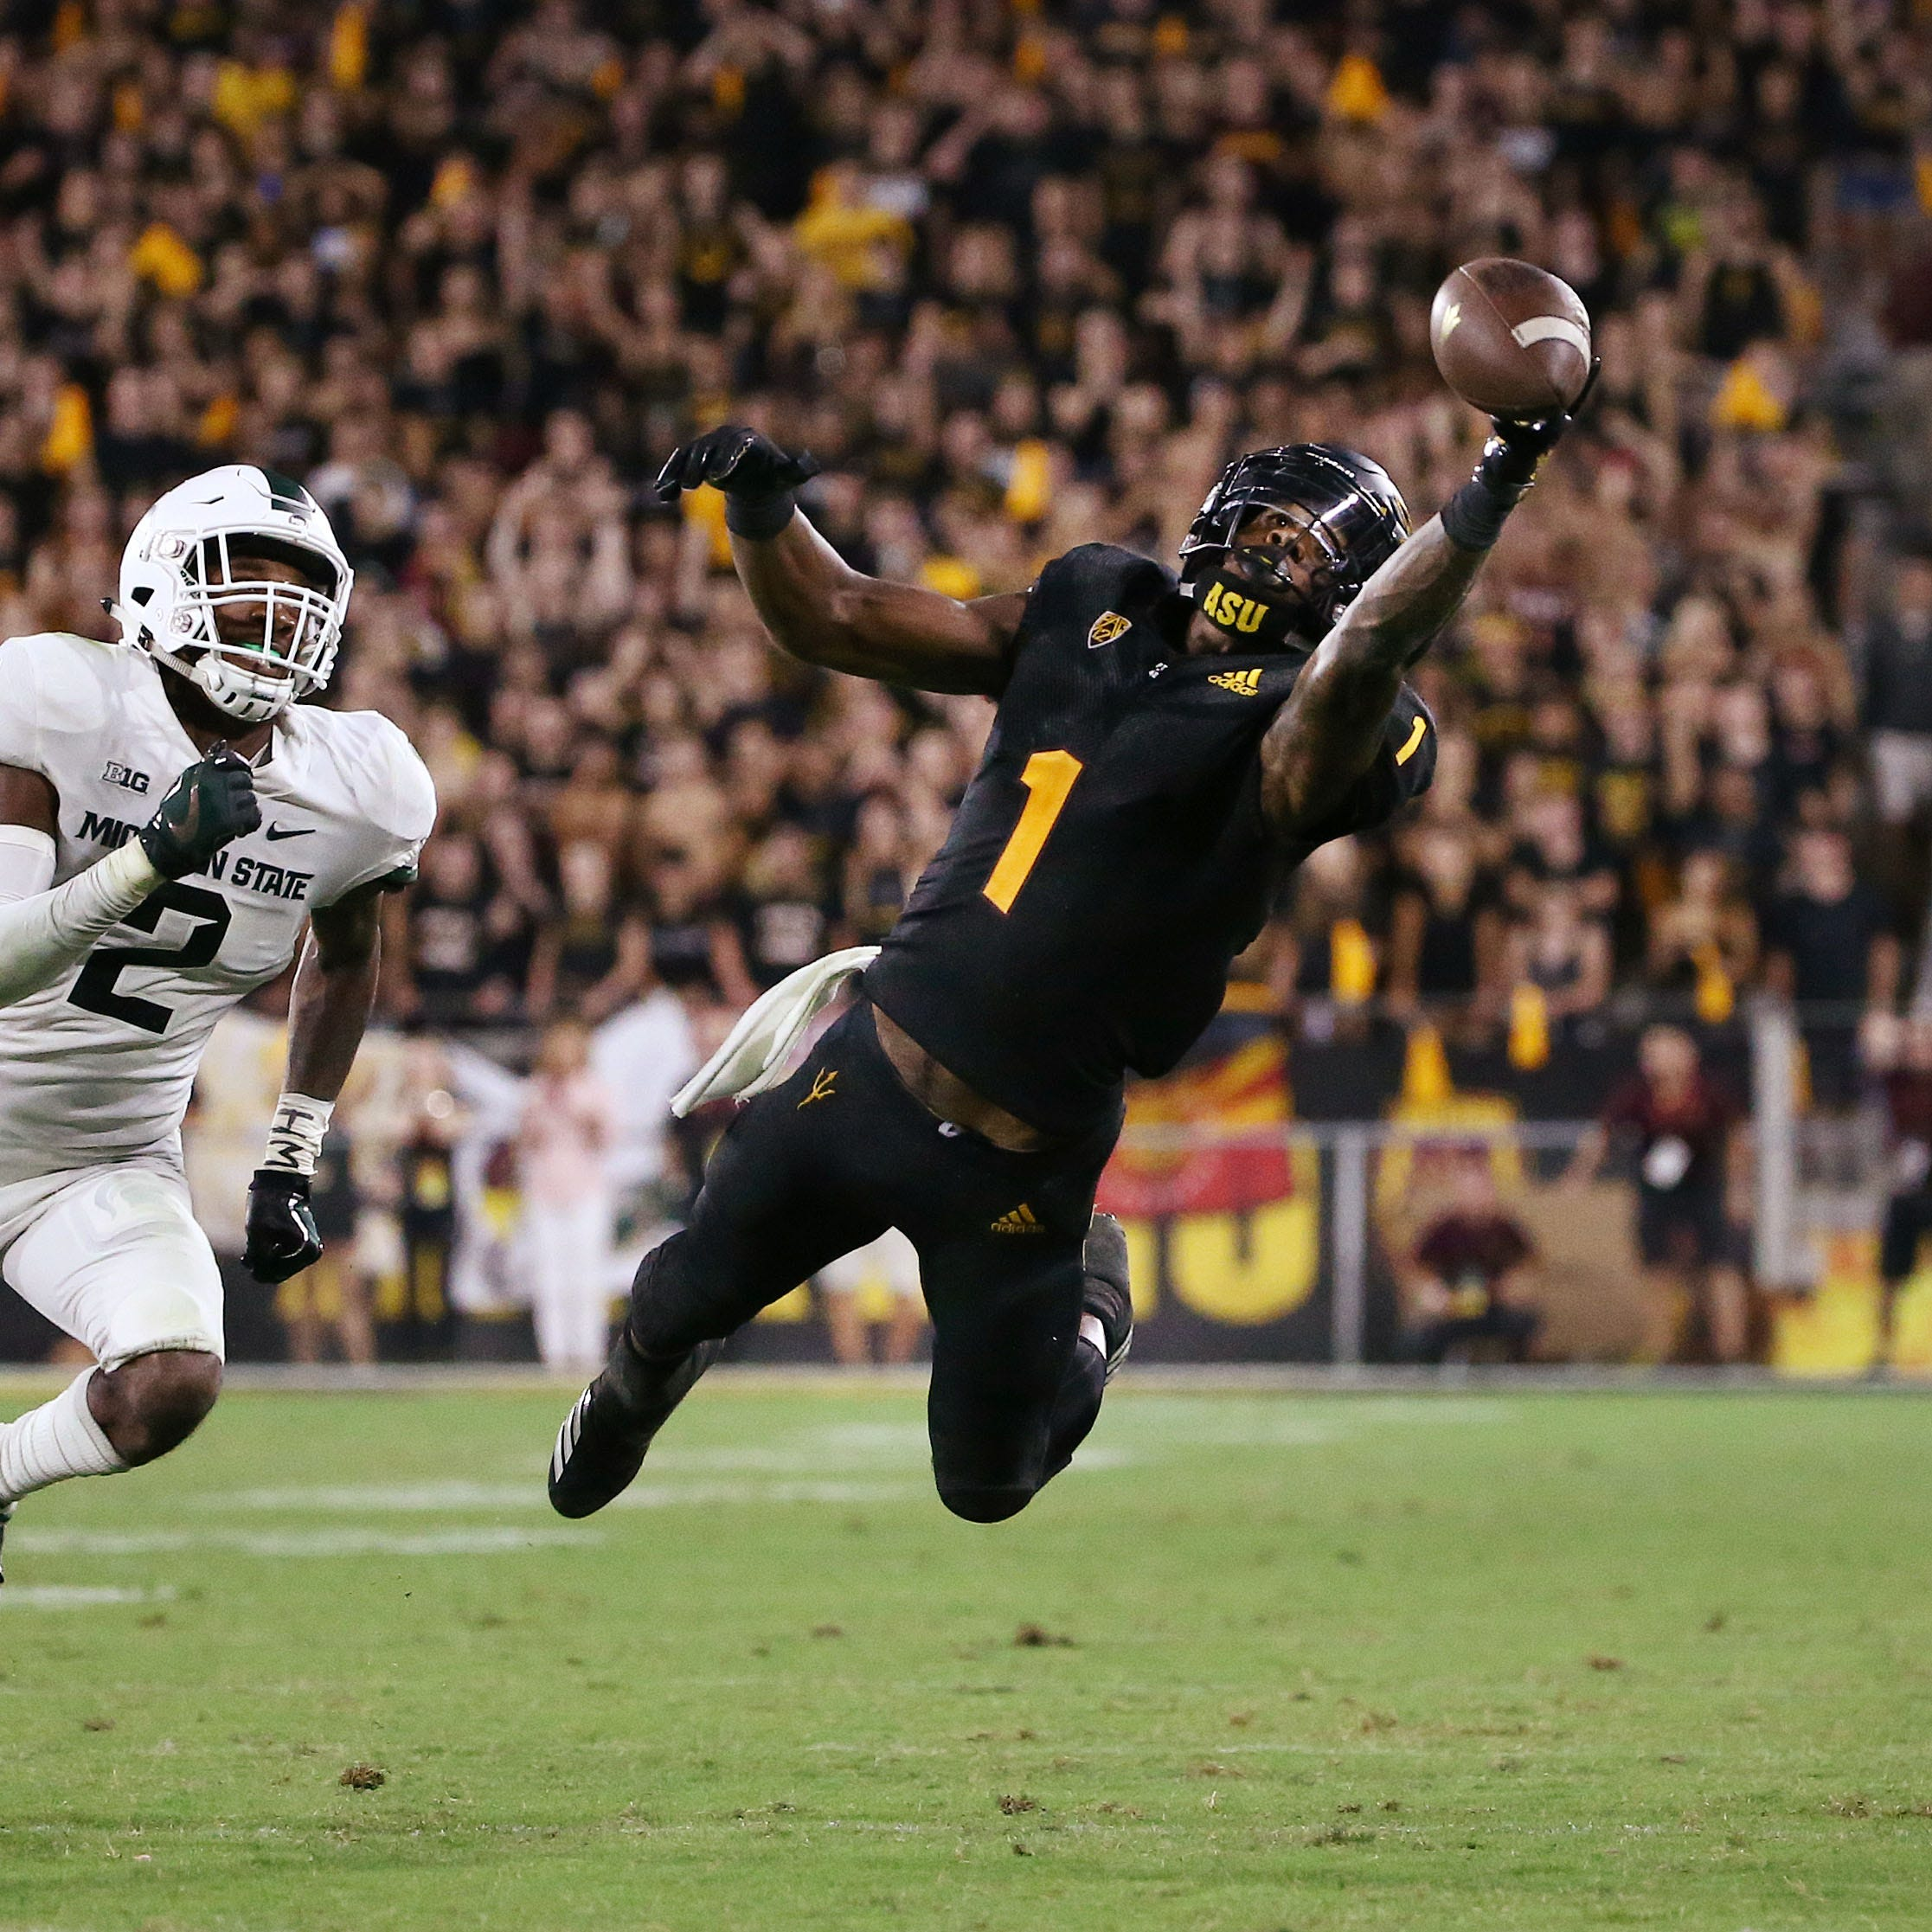 ASU football rewind: Takeaways, grades, personnel notes from Michigan State win